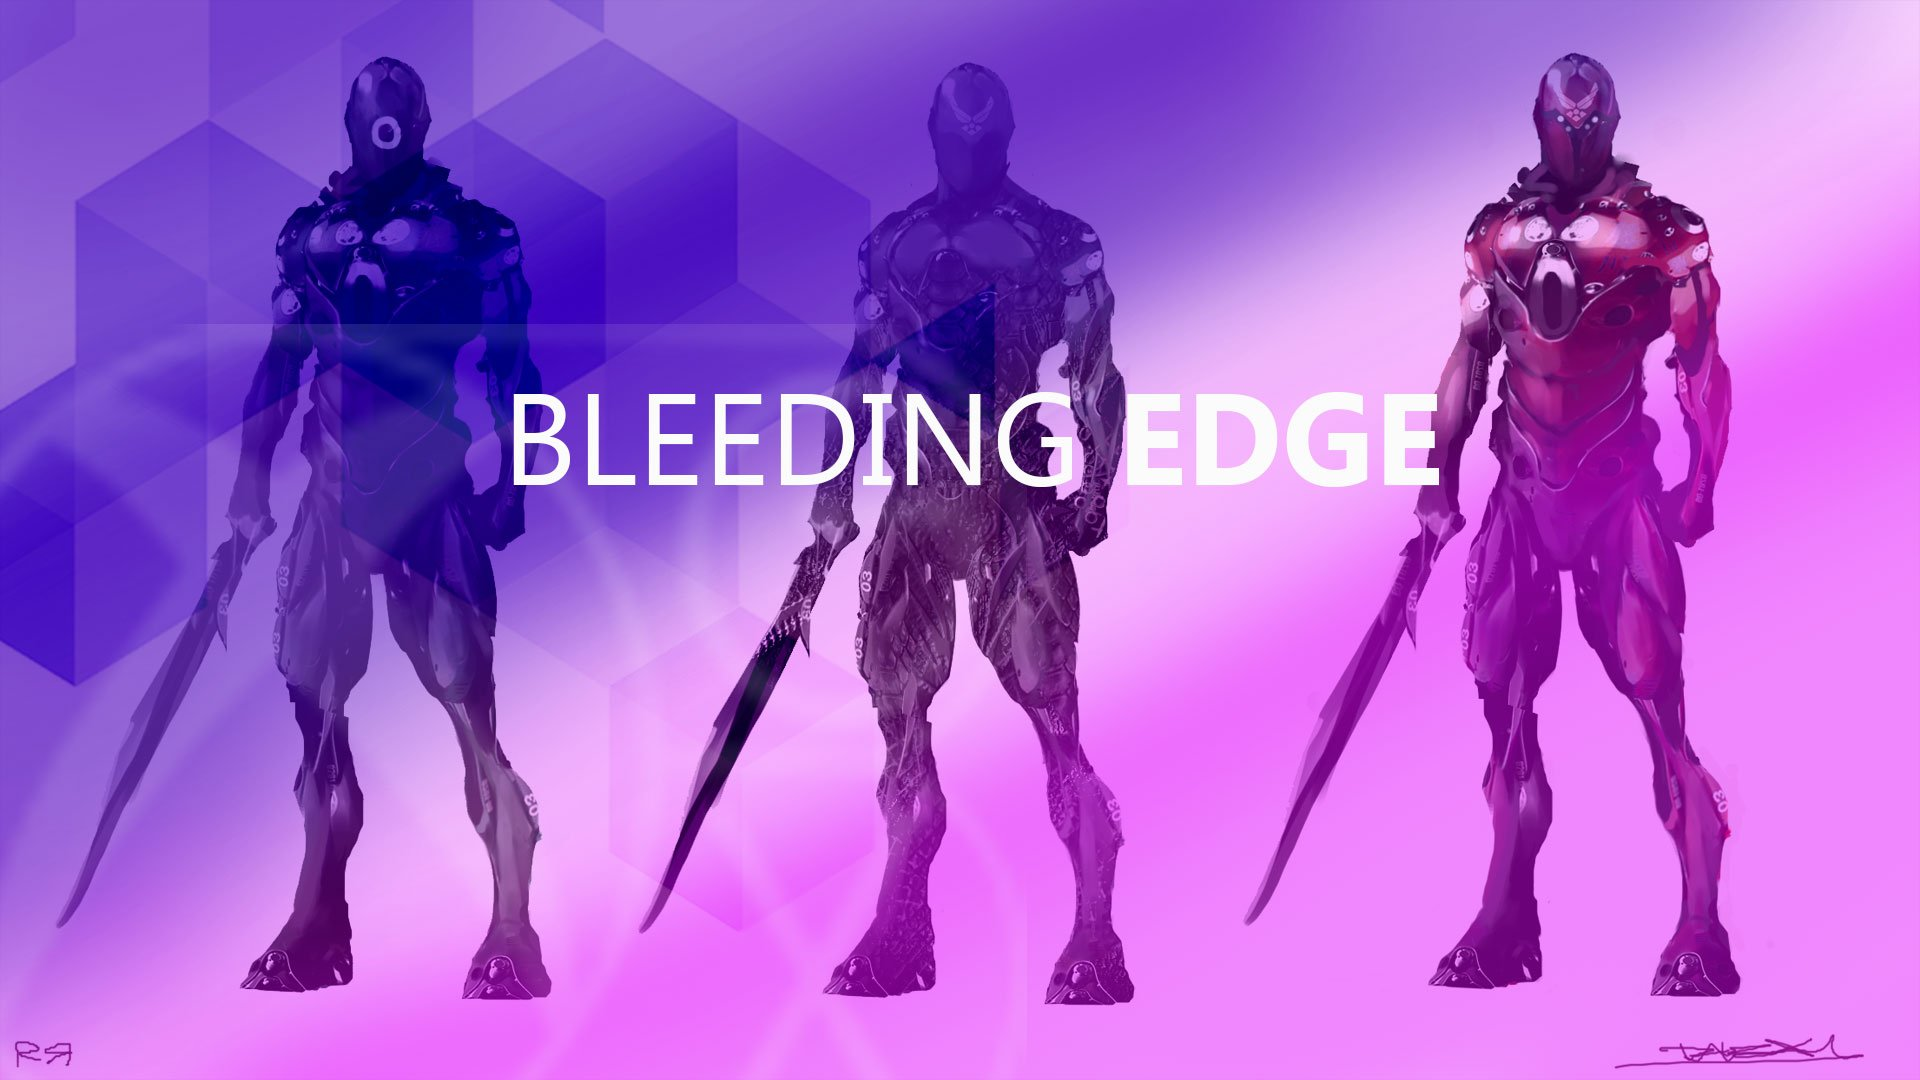 The next game from Ninja Theory will reportedly be titled Bleeding Edge and will be shown during Microsoft's E3 press conference.